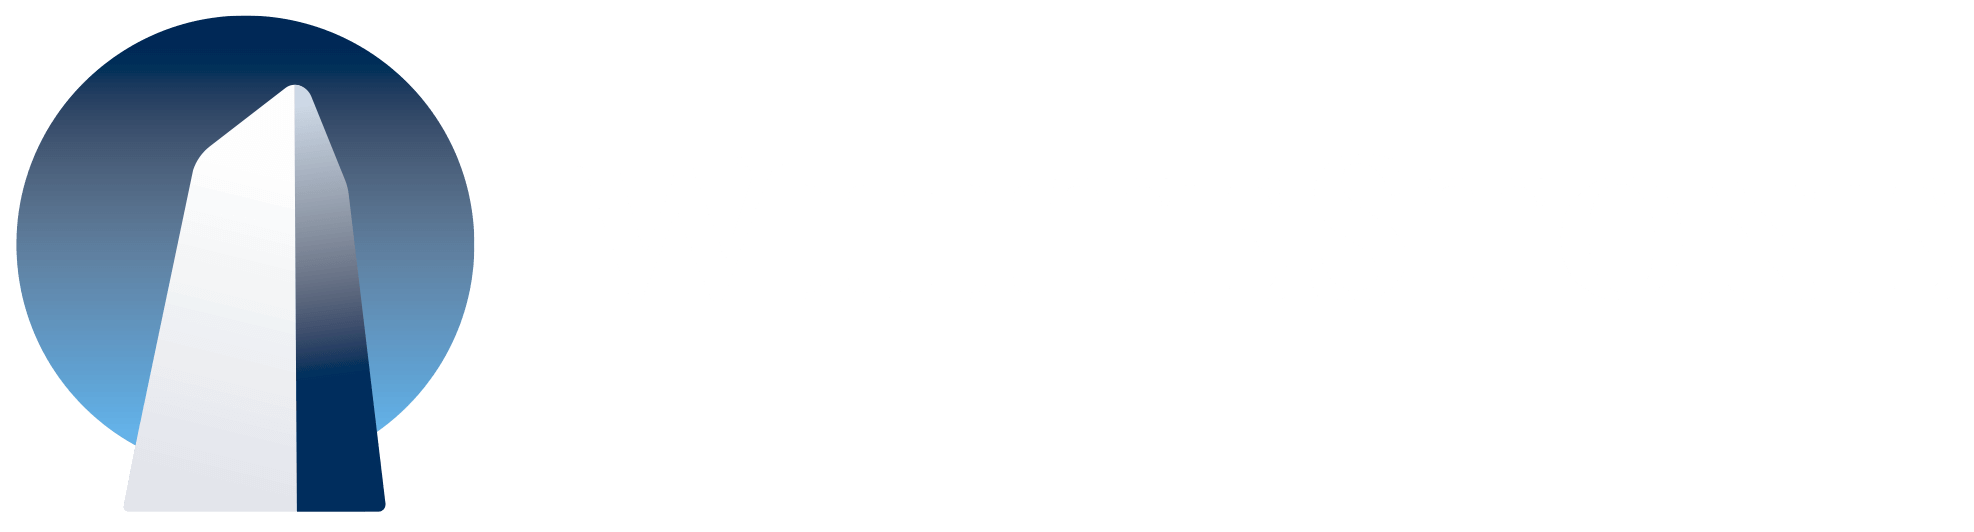 WhiteStone Wealth Management logo